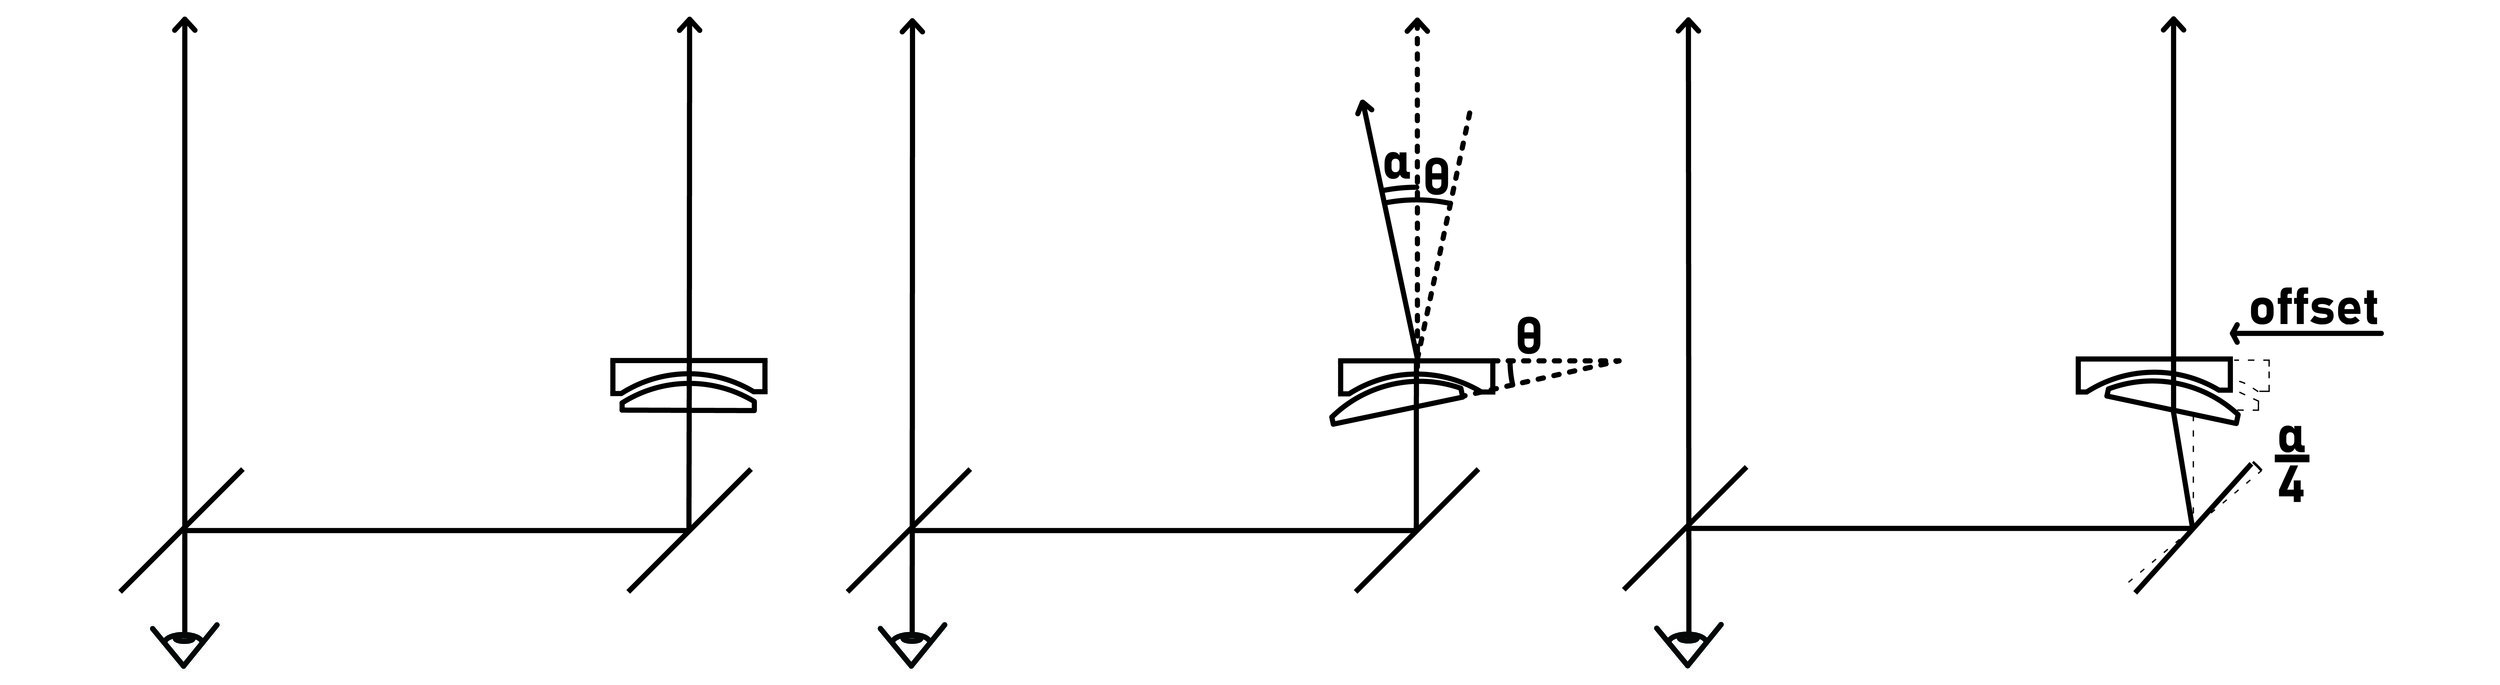 From left to right: zero position, closest focus, adjusted zero position to maximize glass use